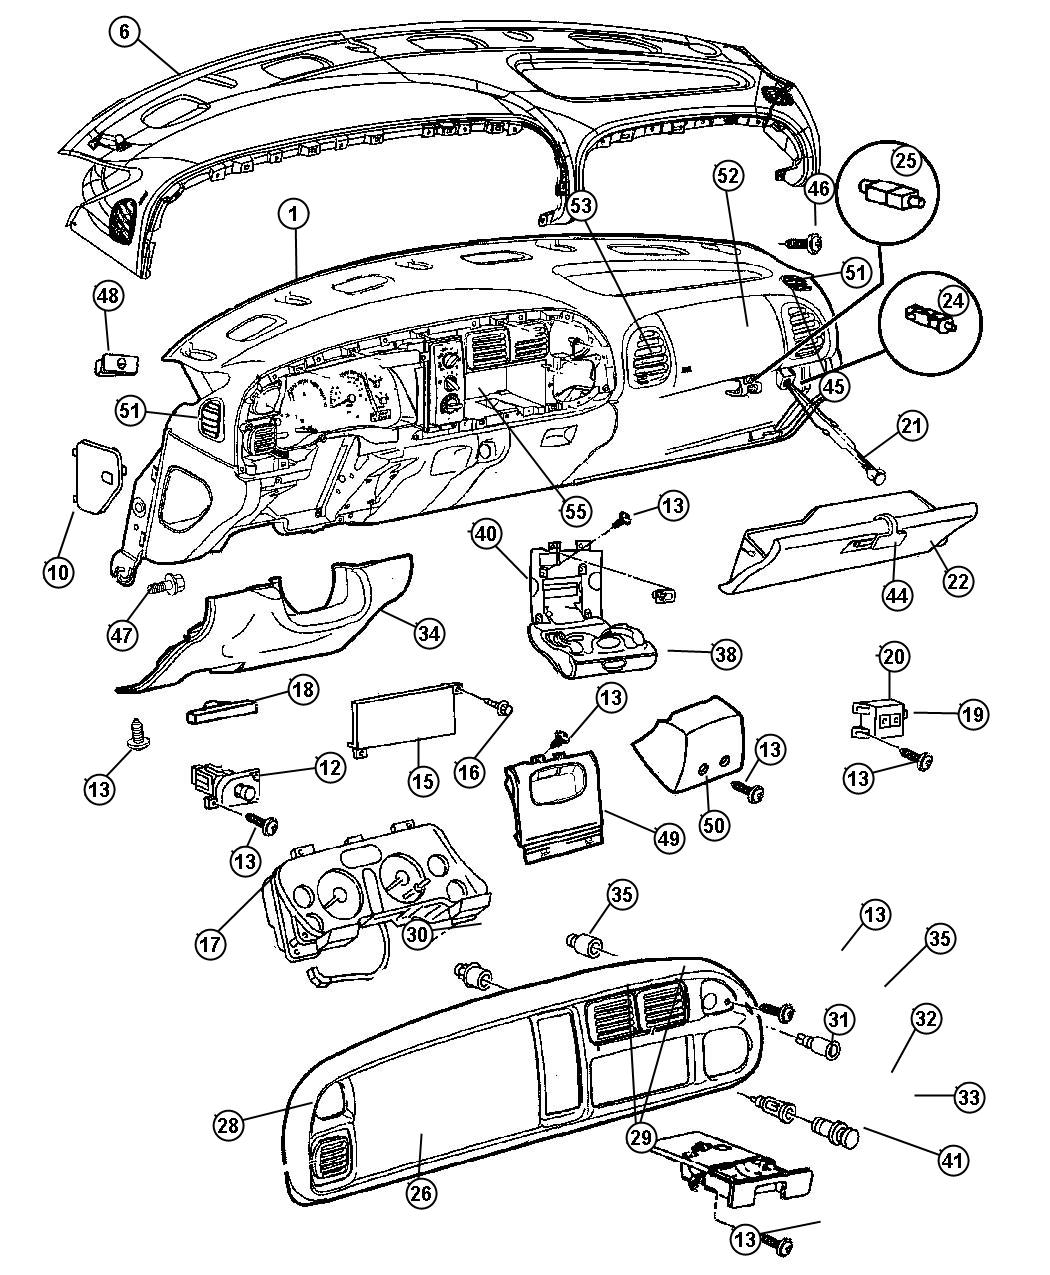 Turn Signal Switch furthermore 2001 Ram 1500 Dash Replacement further 3i2mf Diagram Shetch Replace Evaporator Dodge Ram also Full Size Chevy Tachometer Kit Factory 6000 Rpm 1963 1964 moreover 1052313 Steering Column Wiring Colors. on dodge ram dash wiring harness